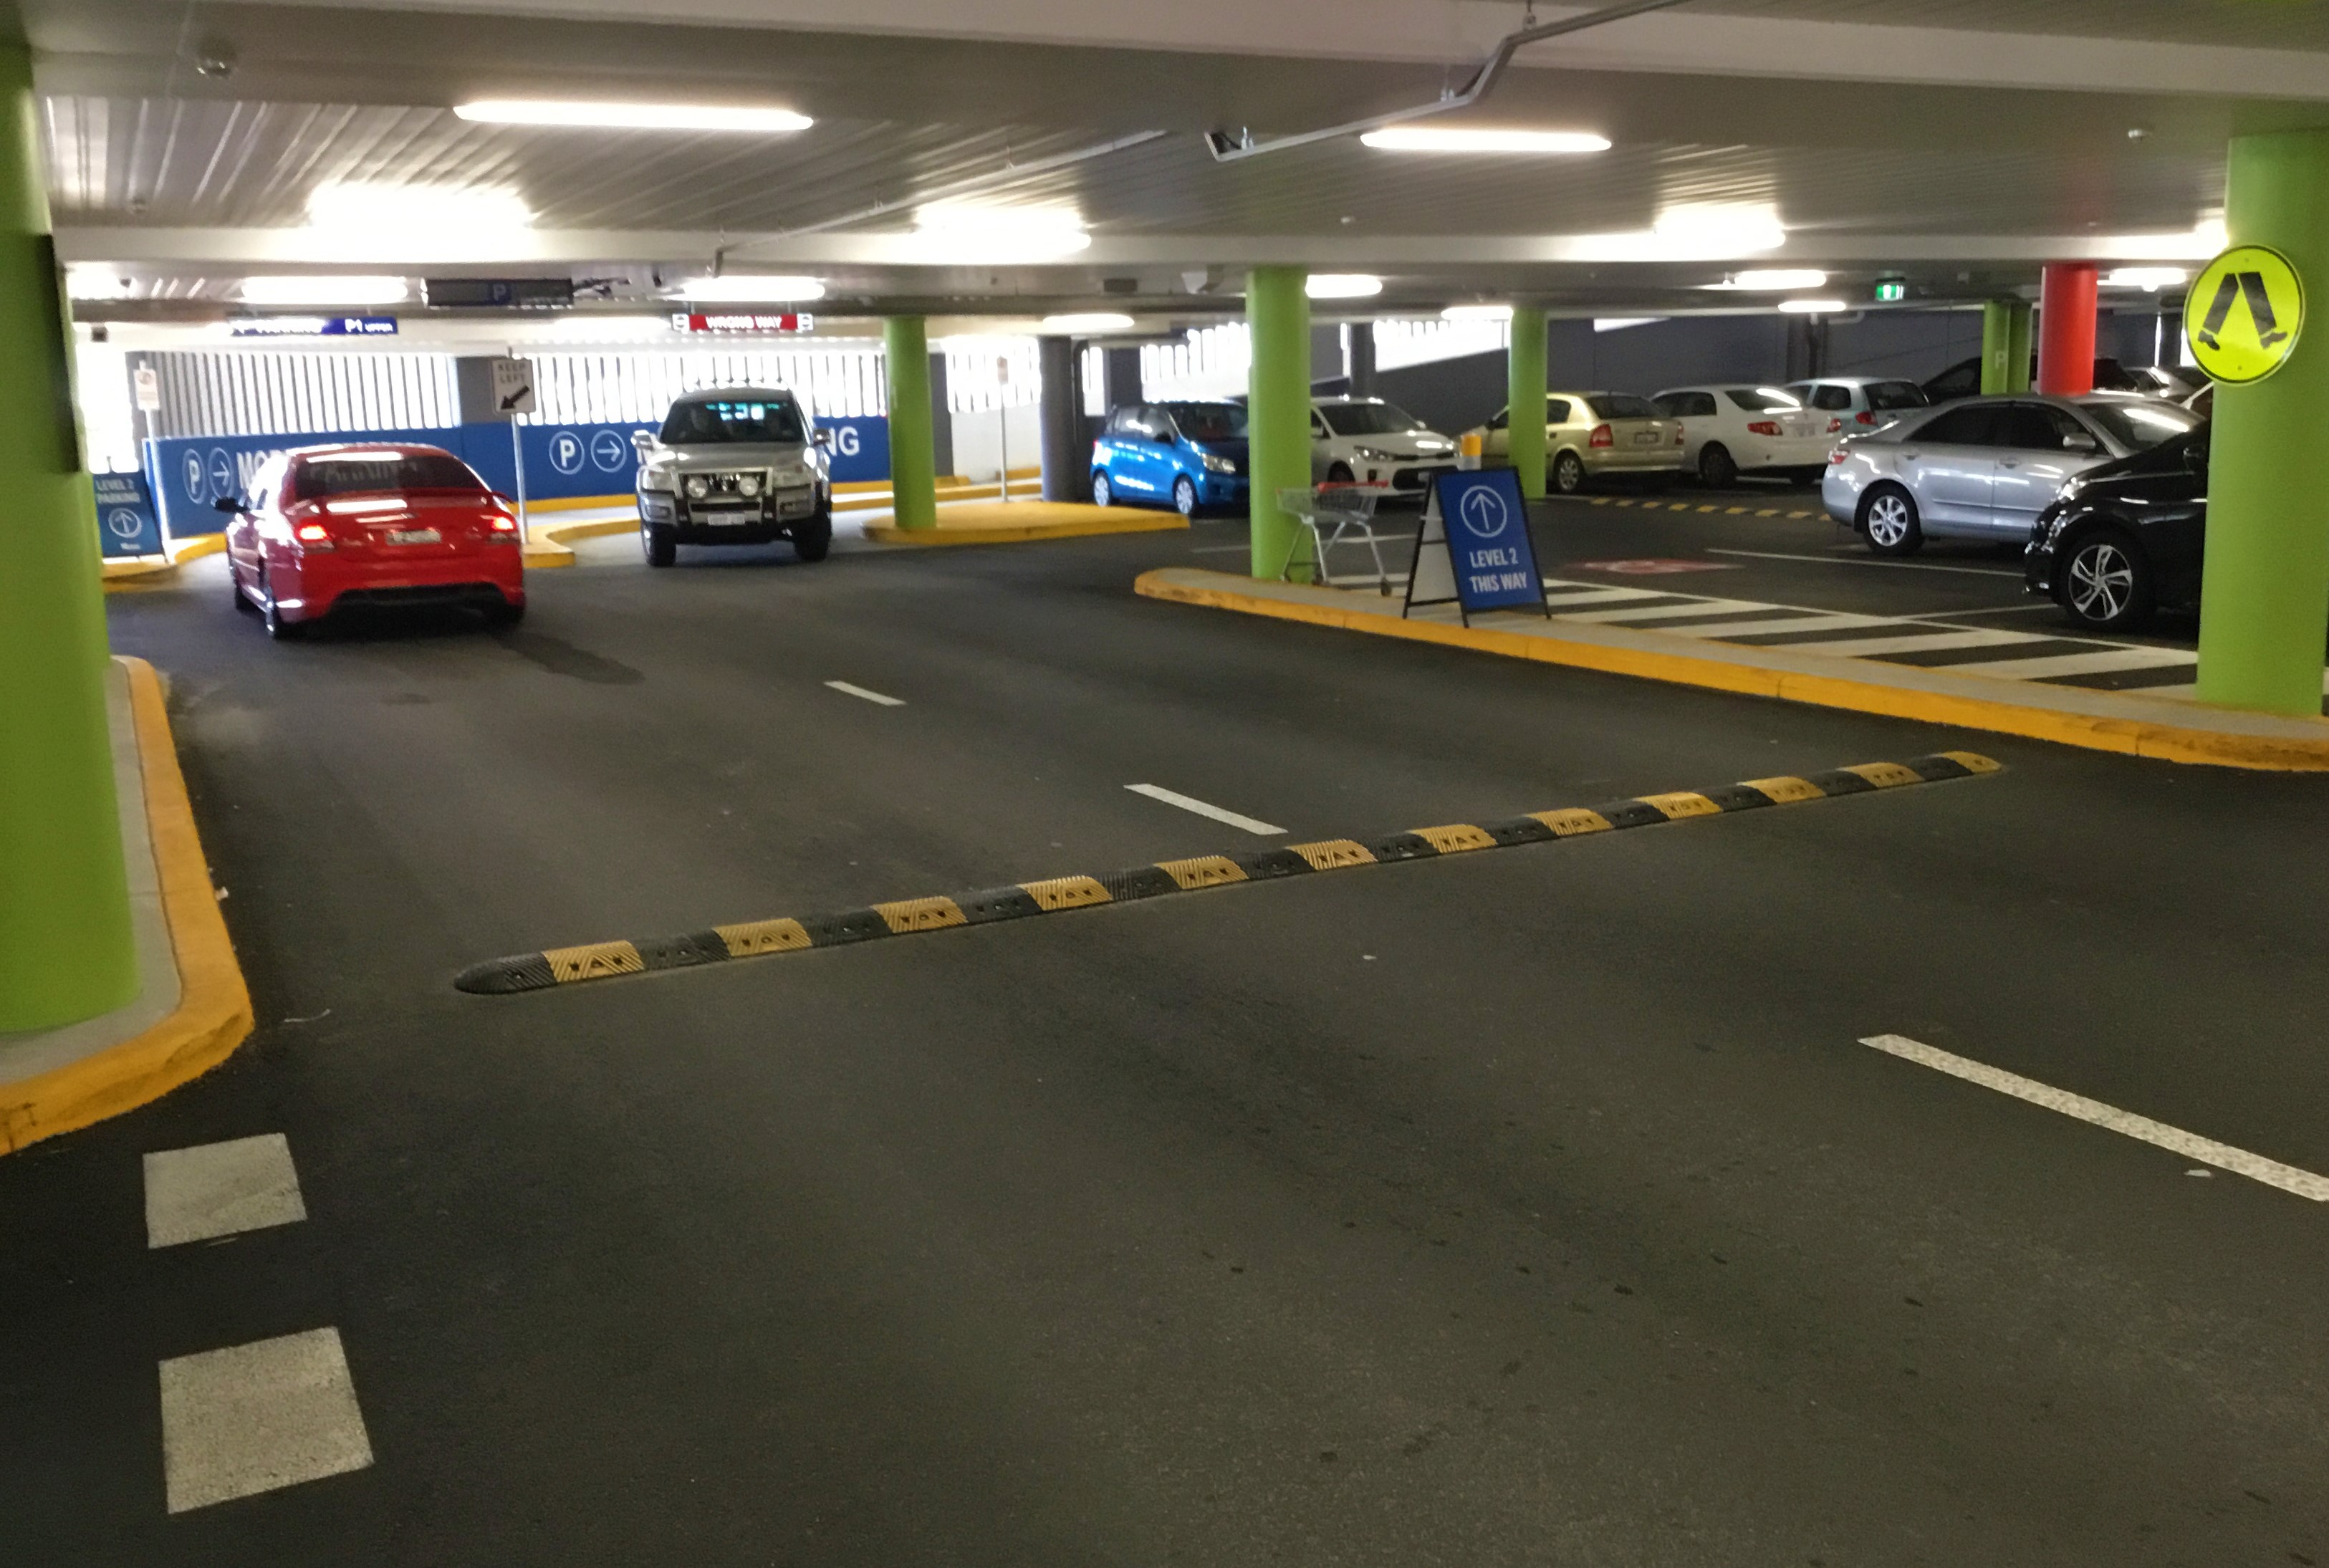 Garage Parking- Kerbing, Line Marking, Speed Bumps